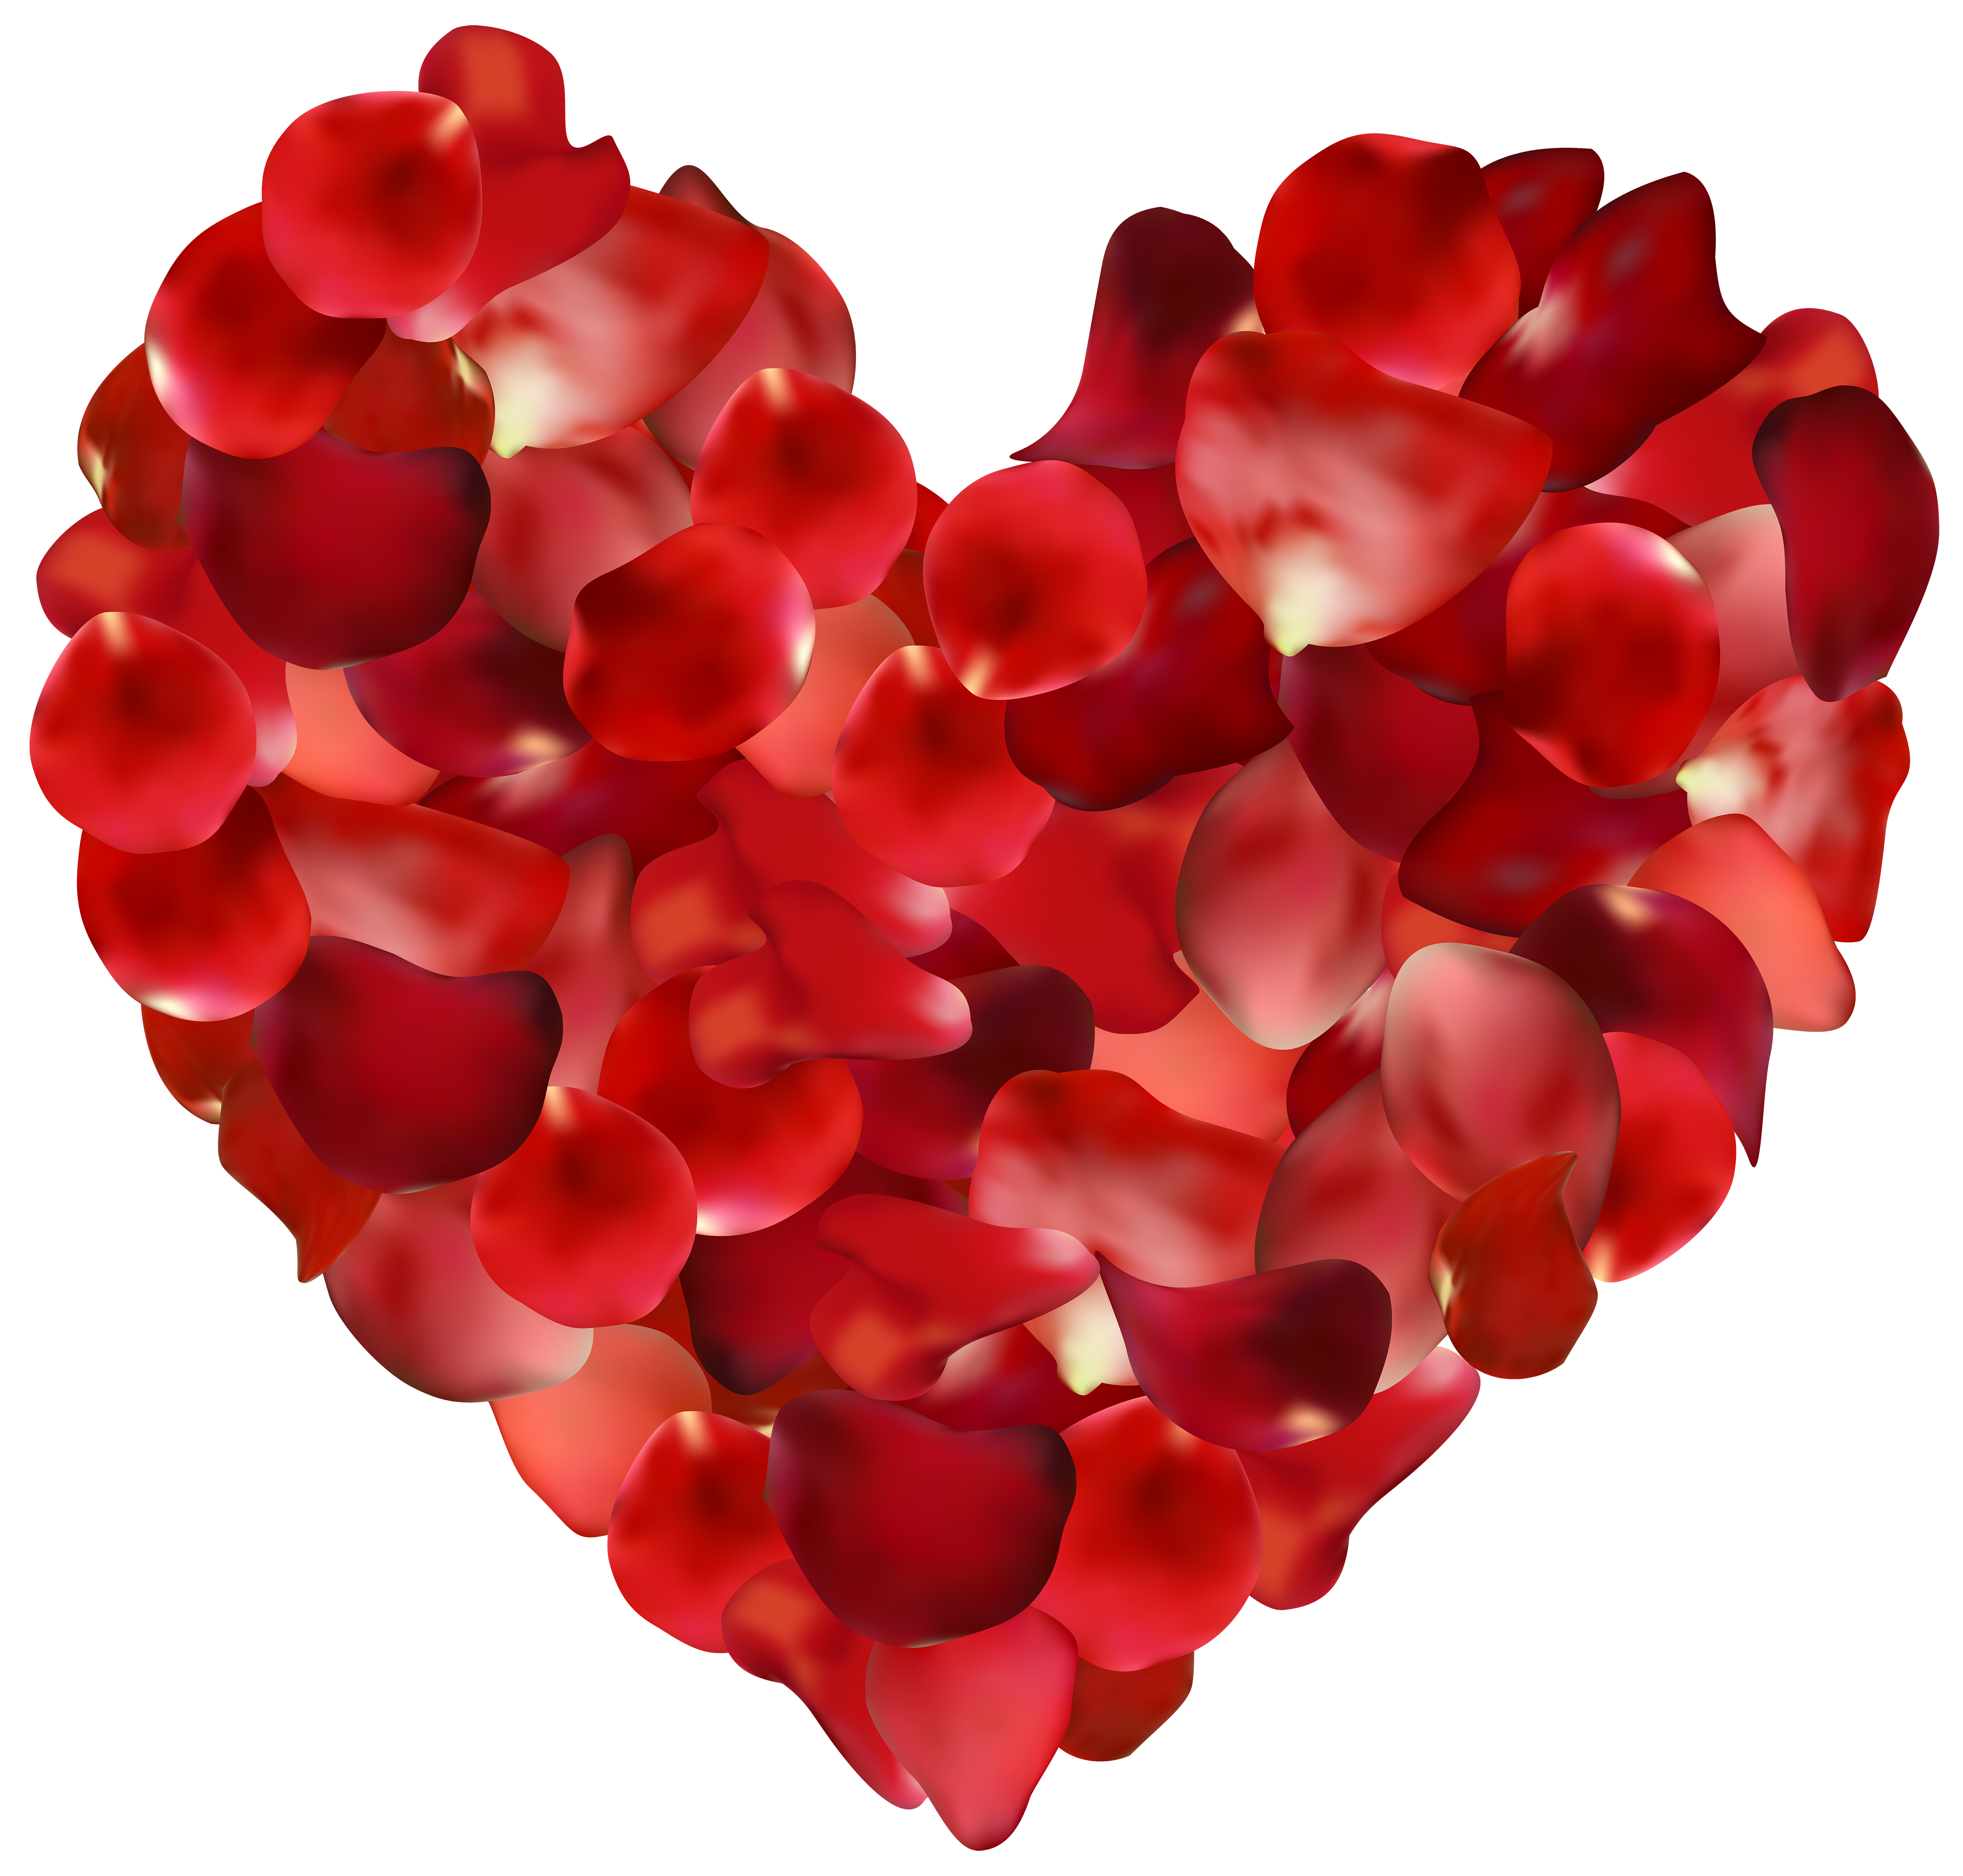 Free rose heart clipart clipart free download Petal Rose Heart Clip art - Rose Petals Hearts Transparent PNG Clip ... clipart free download